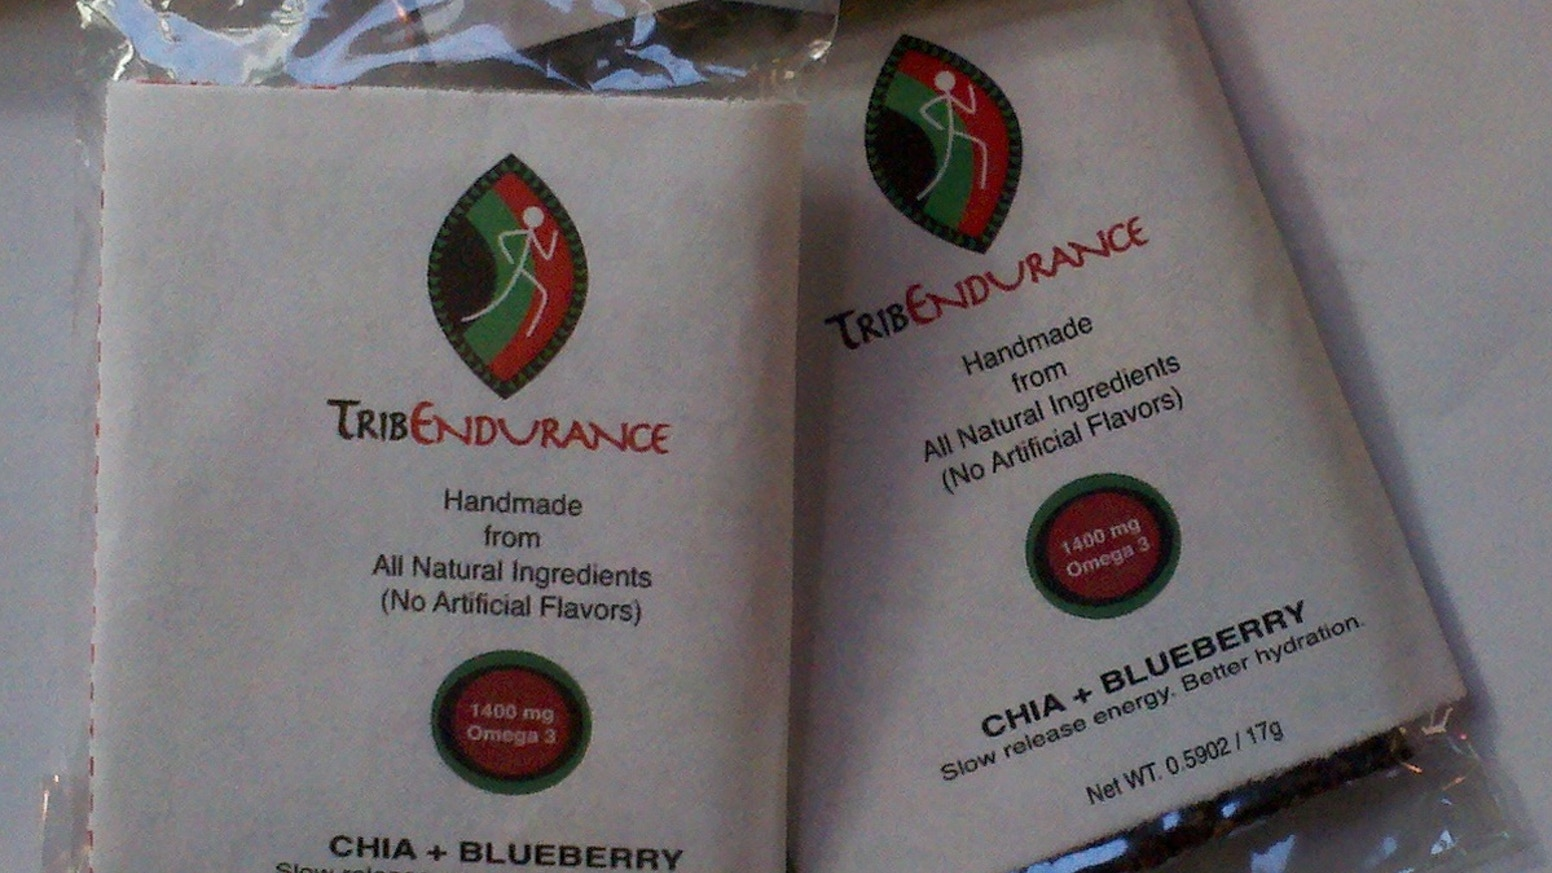 Tribendurance chia energy bars tasty all natural handmade by kipkosgei magut kickstarter - Kroger mobel essen ...